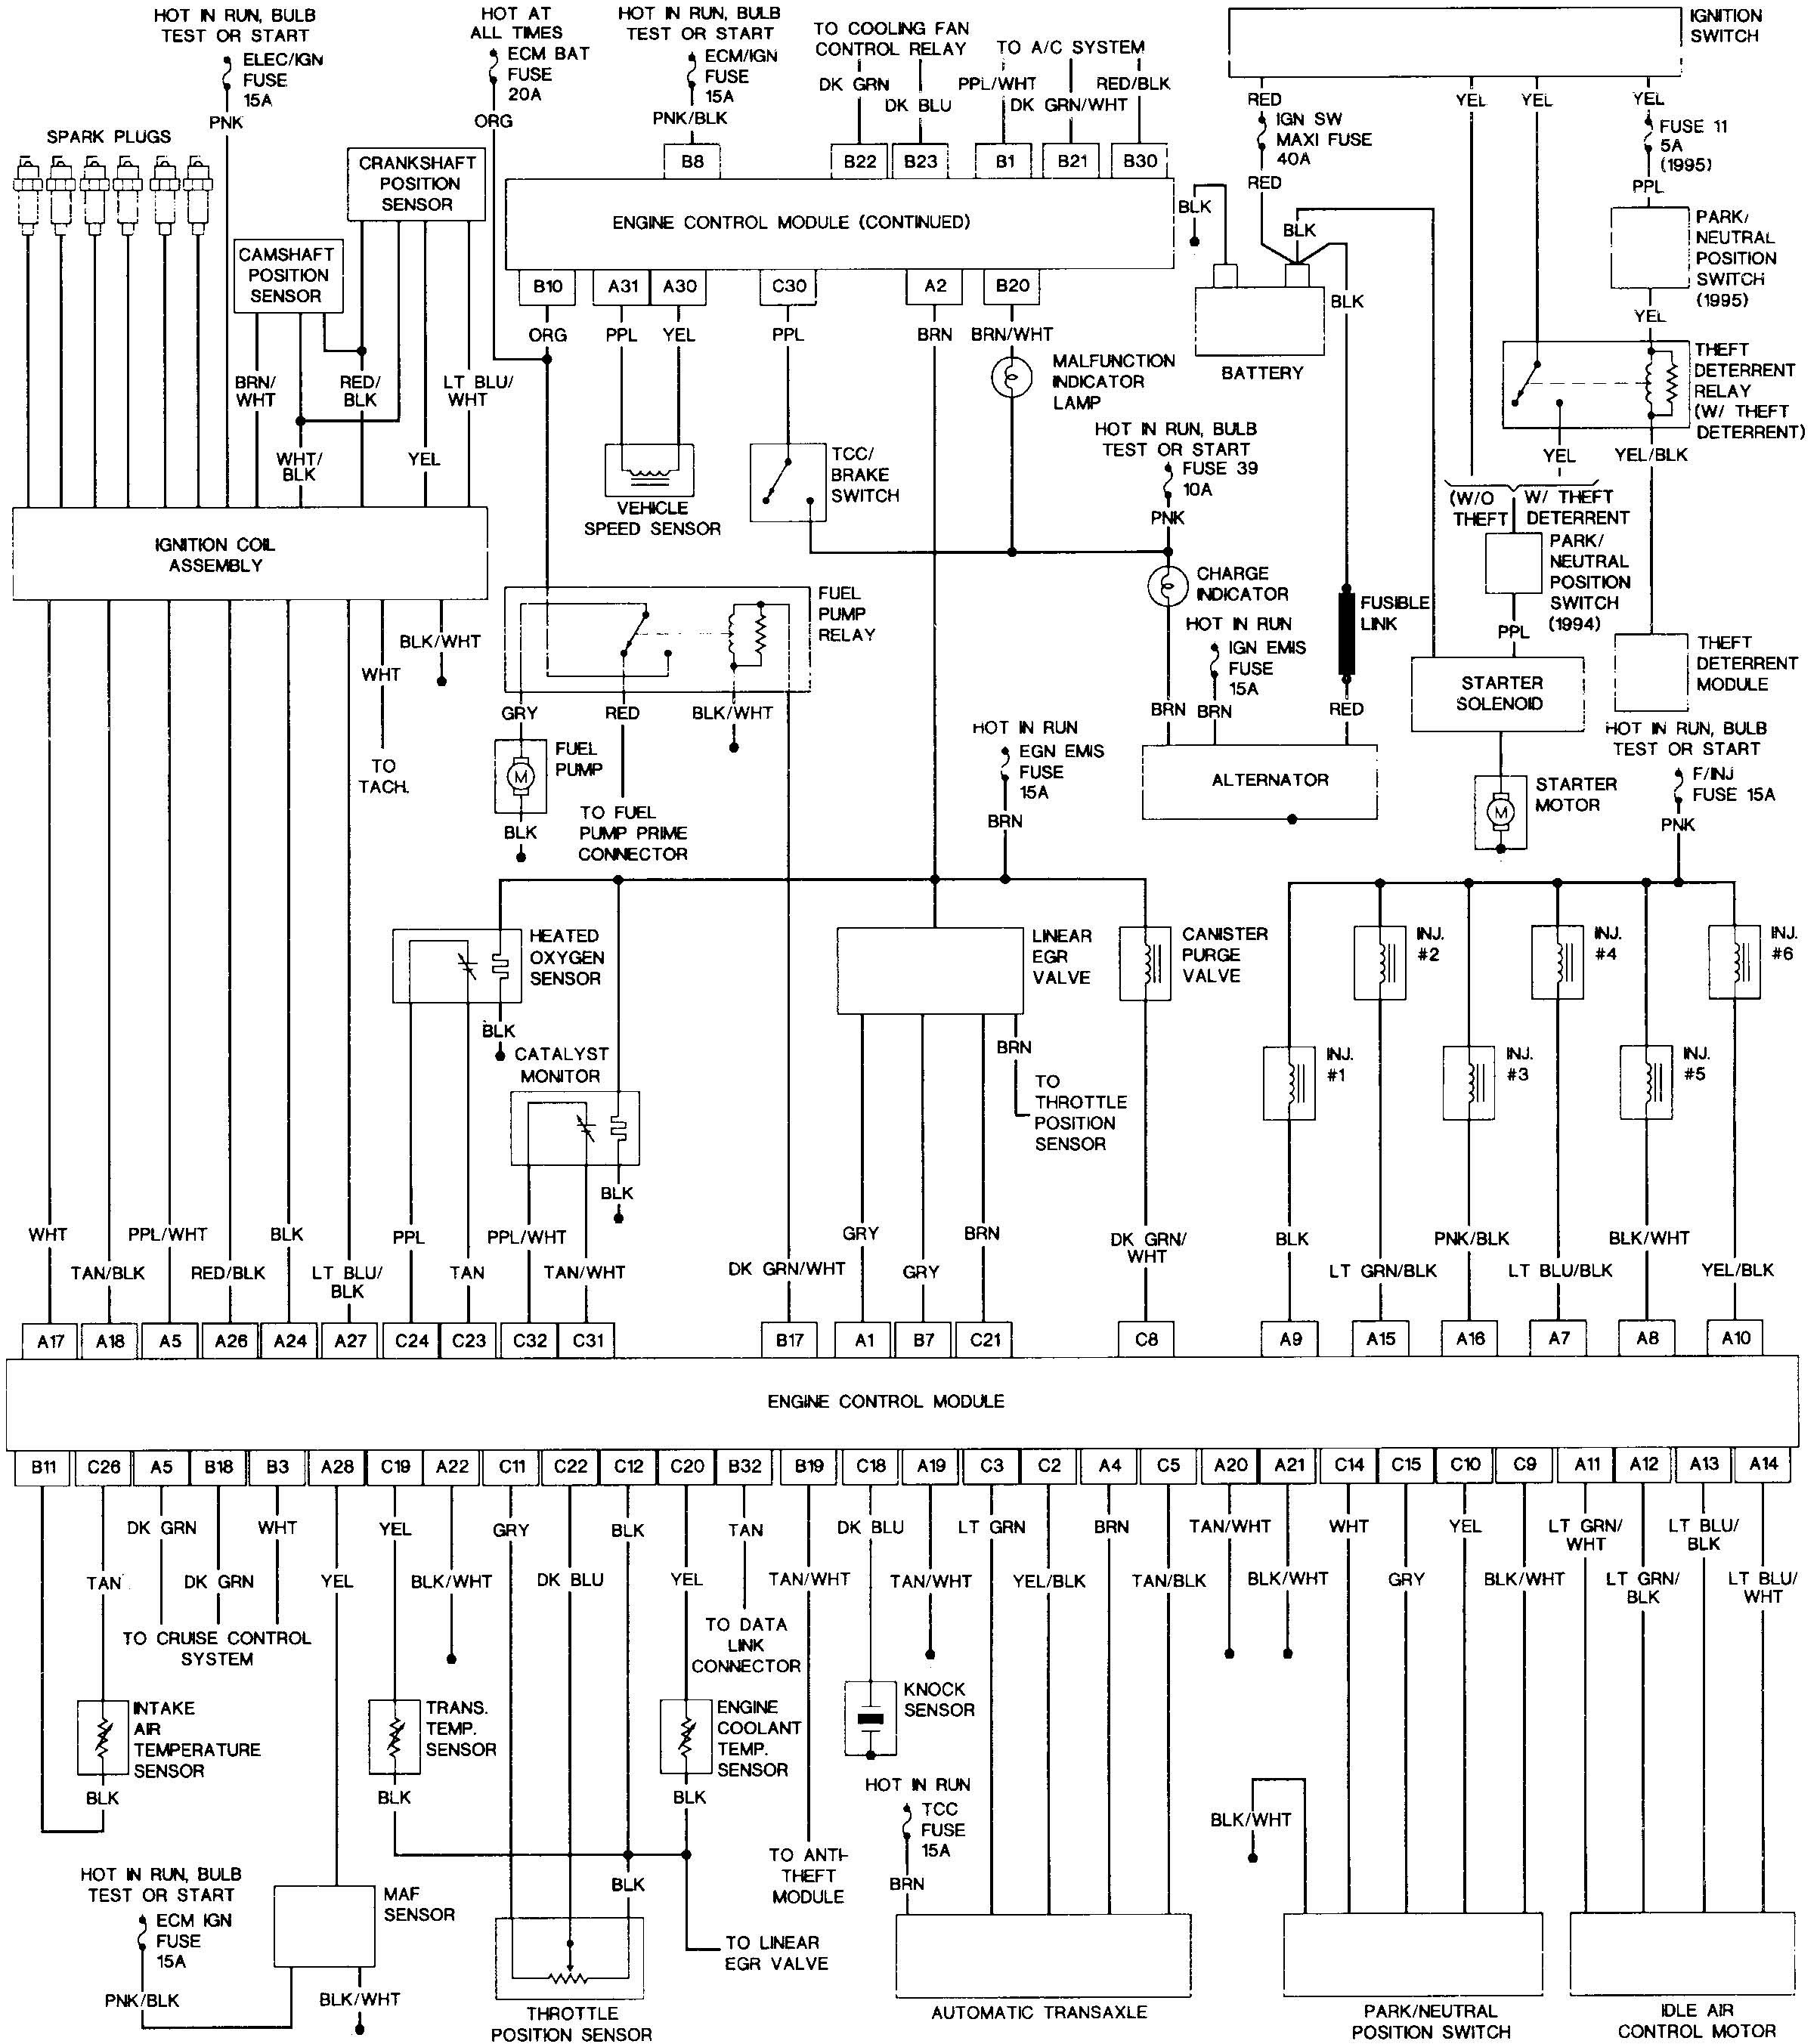 Stereo Wiring Diagram For Buick Lesabre